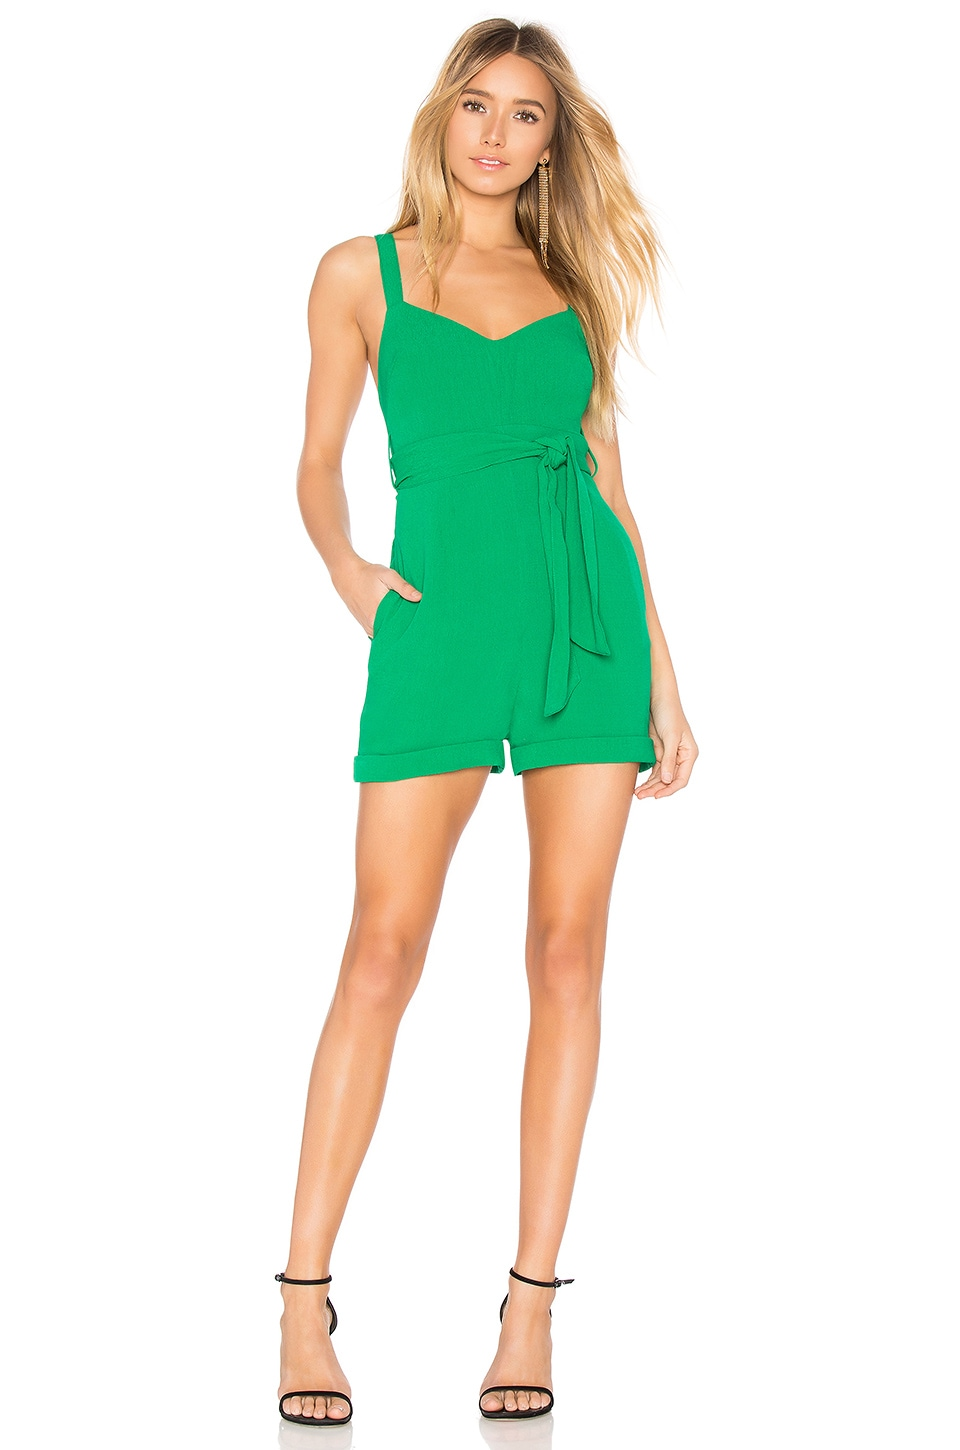 FLYNN SKYE Romy Romper in Jolly Green